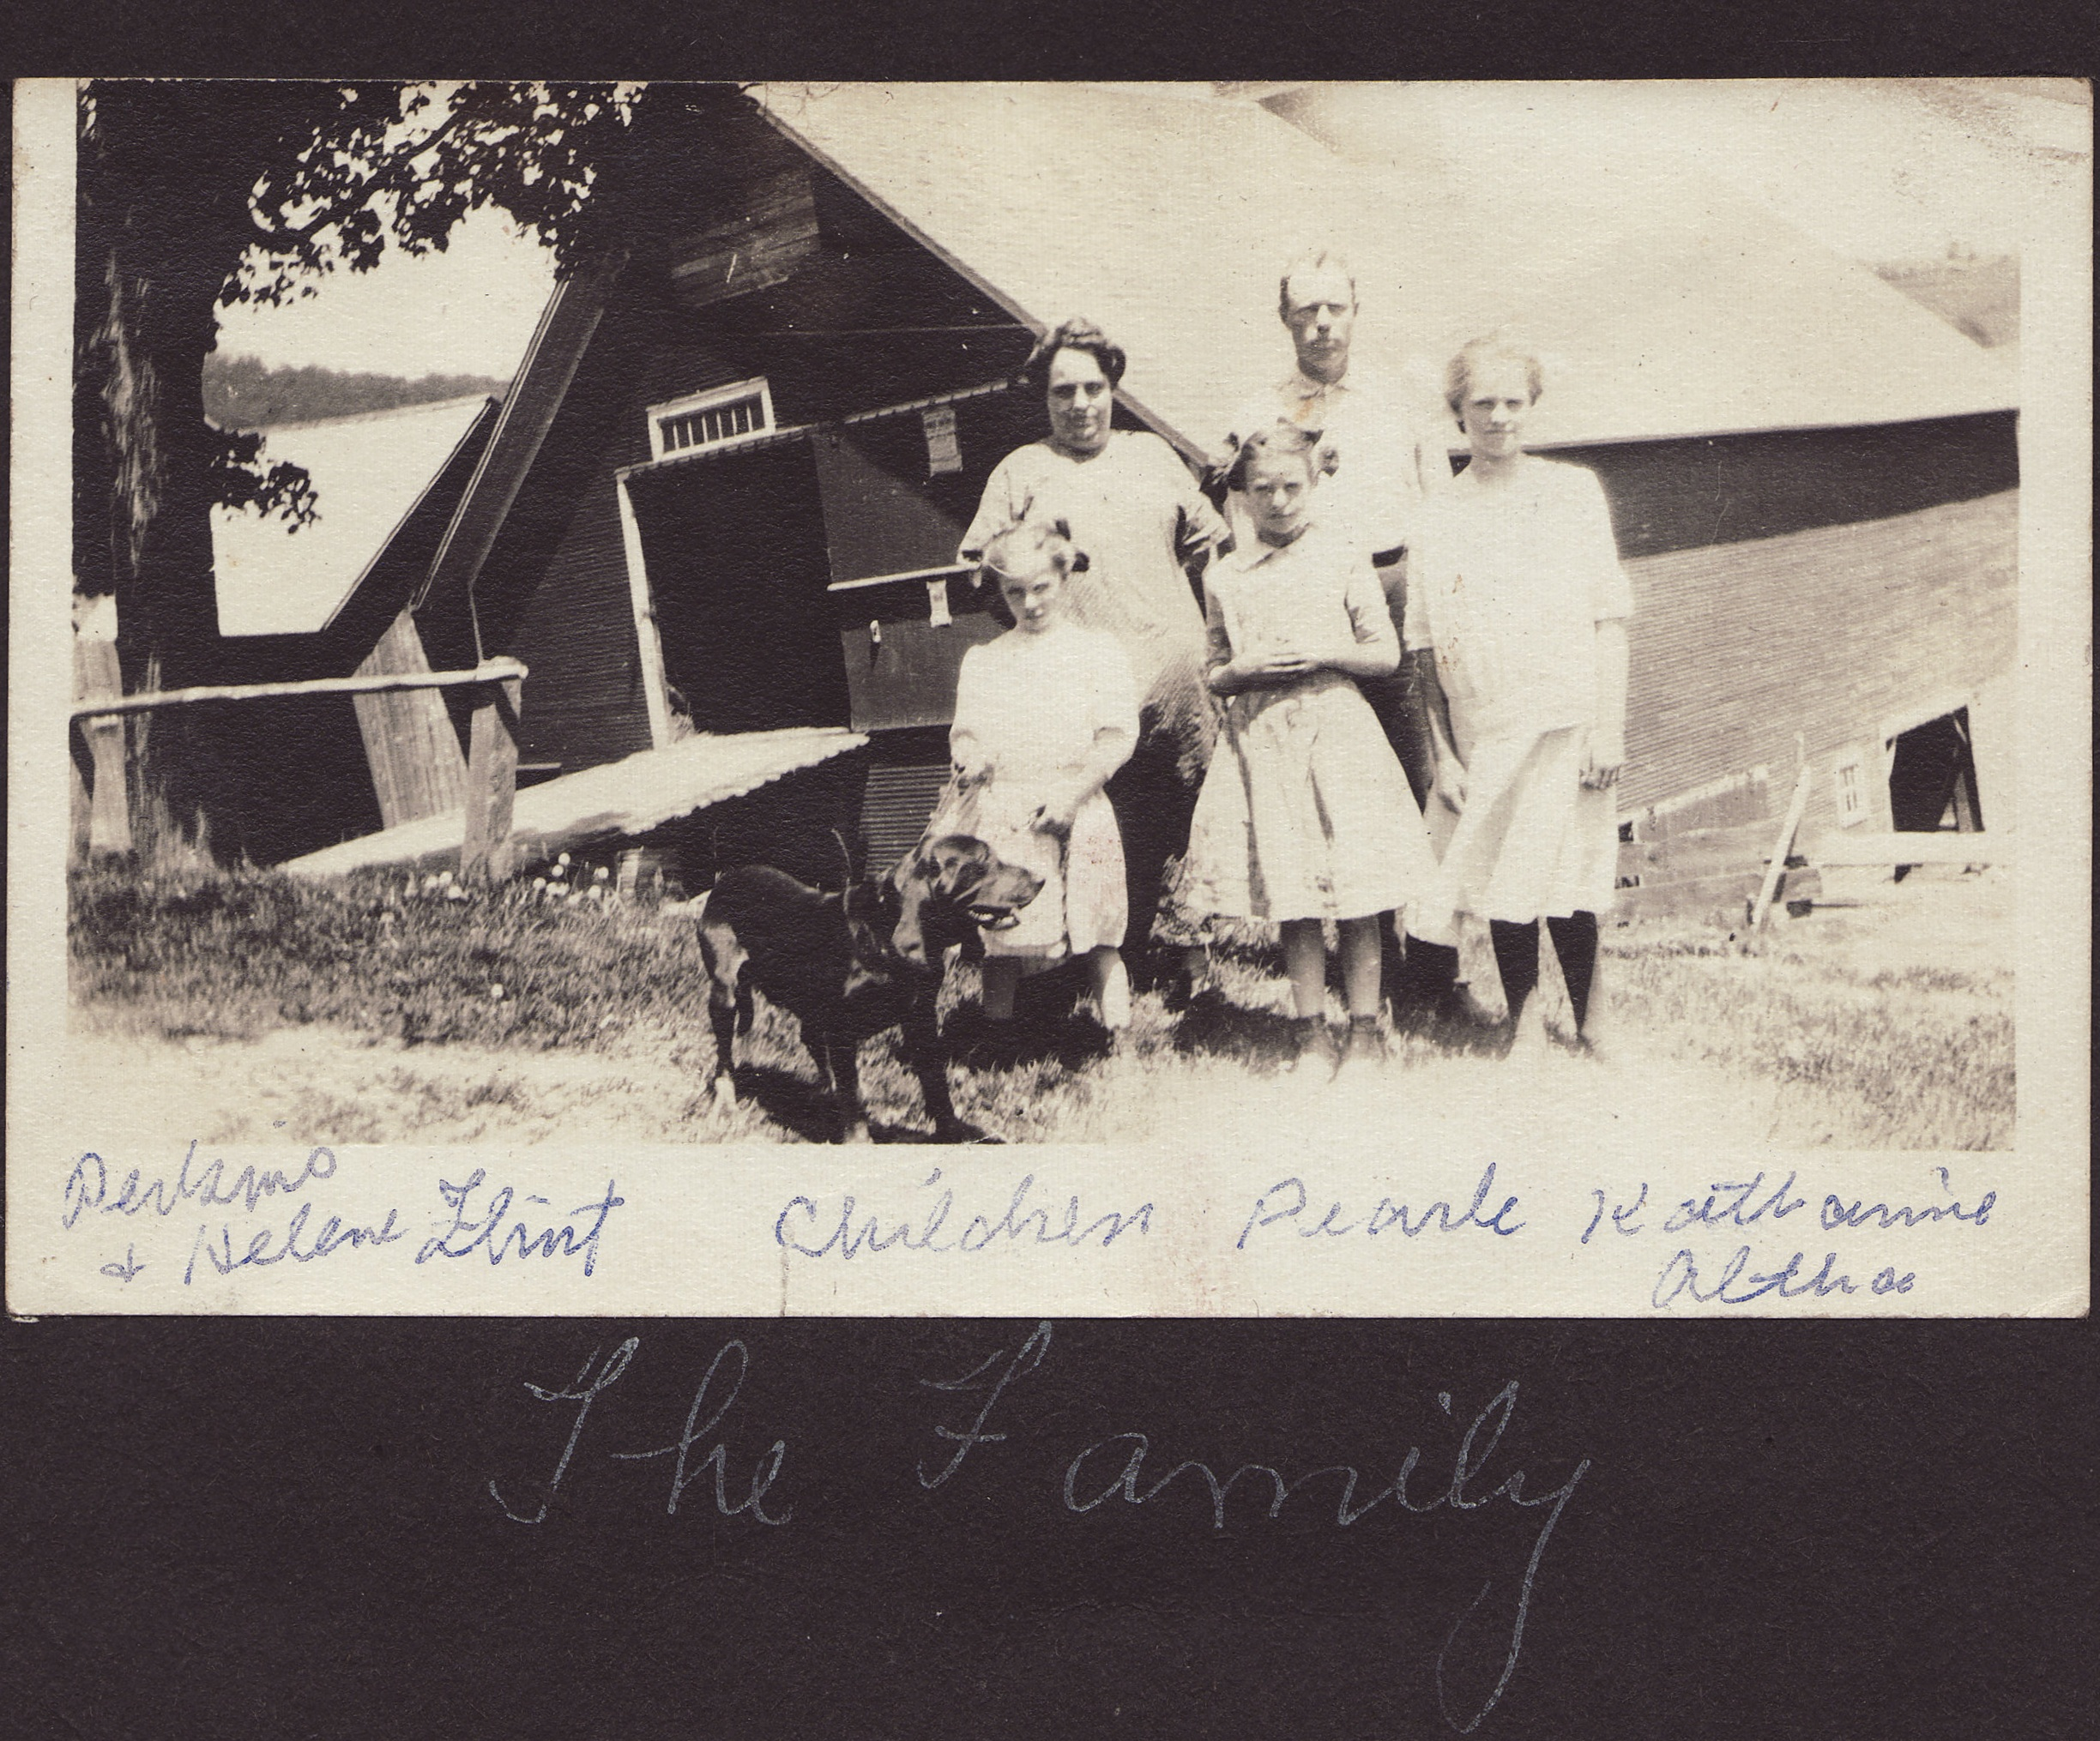 The Flint Family - from a photo album donated to the VFC